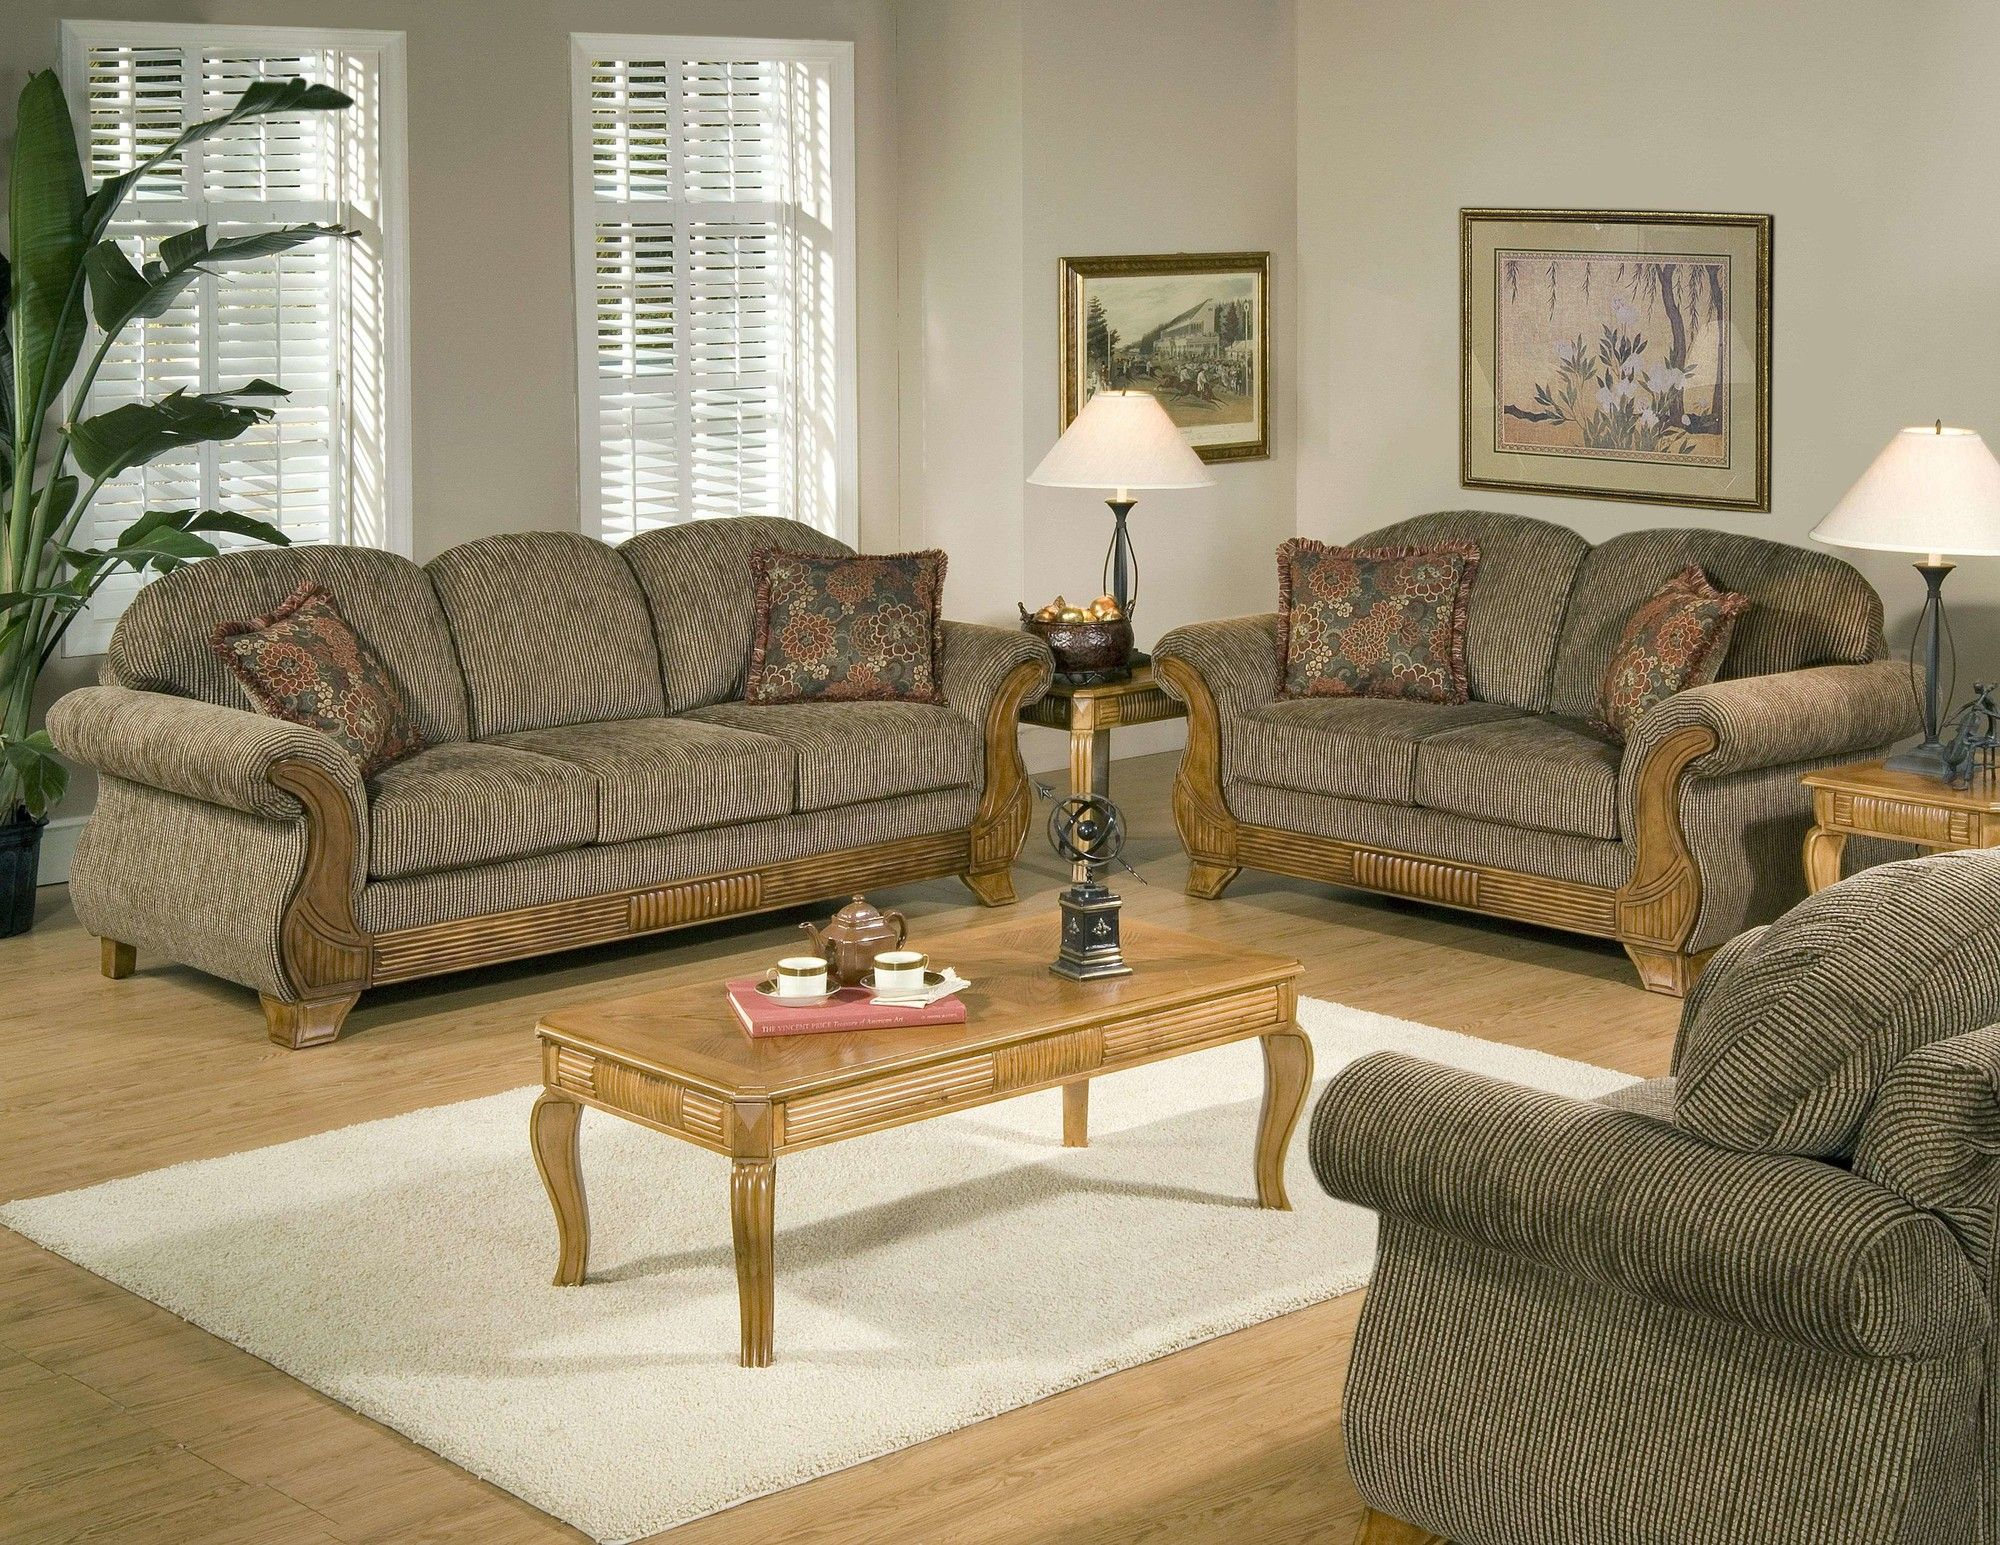 Best Living Room Set Wayfair Living Room Sets Wayfair Living Room Furniture Living Room Sofa 400 x 300